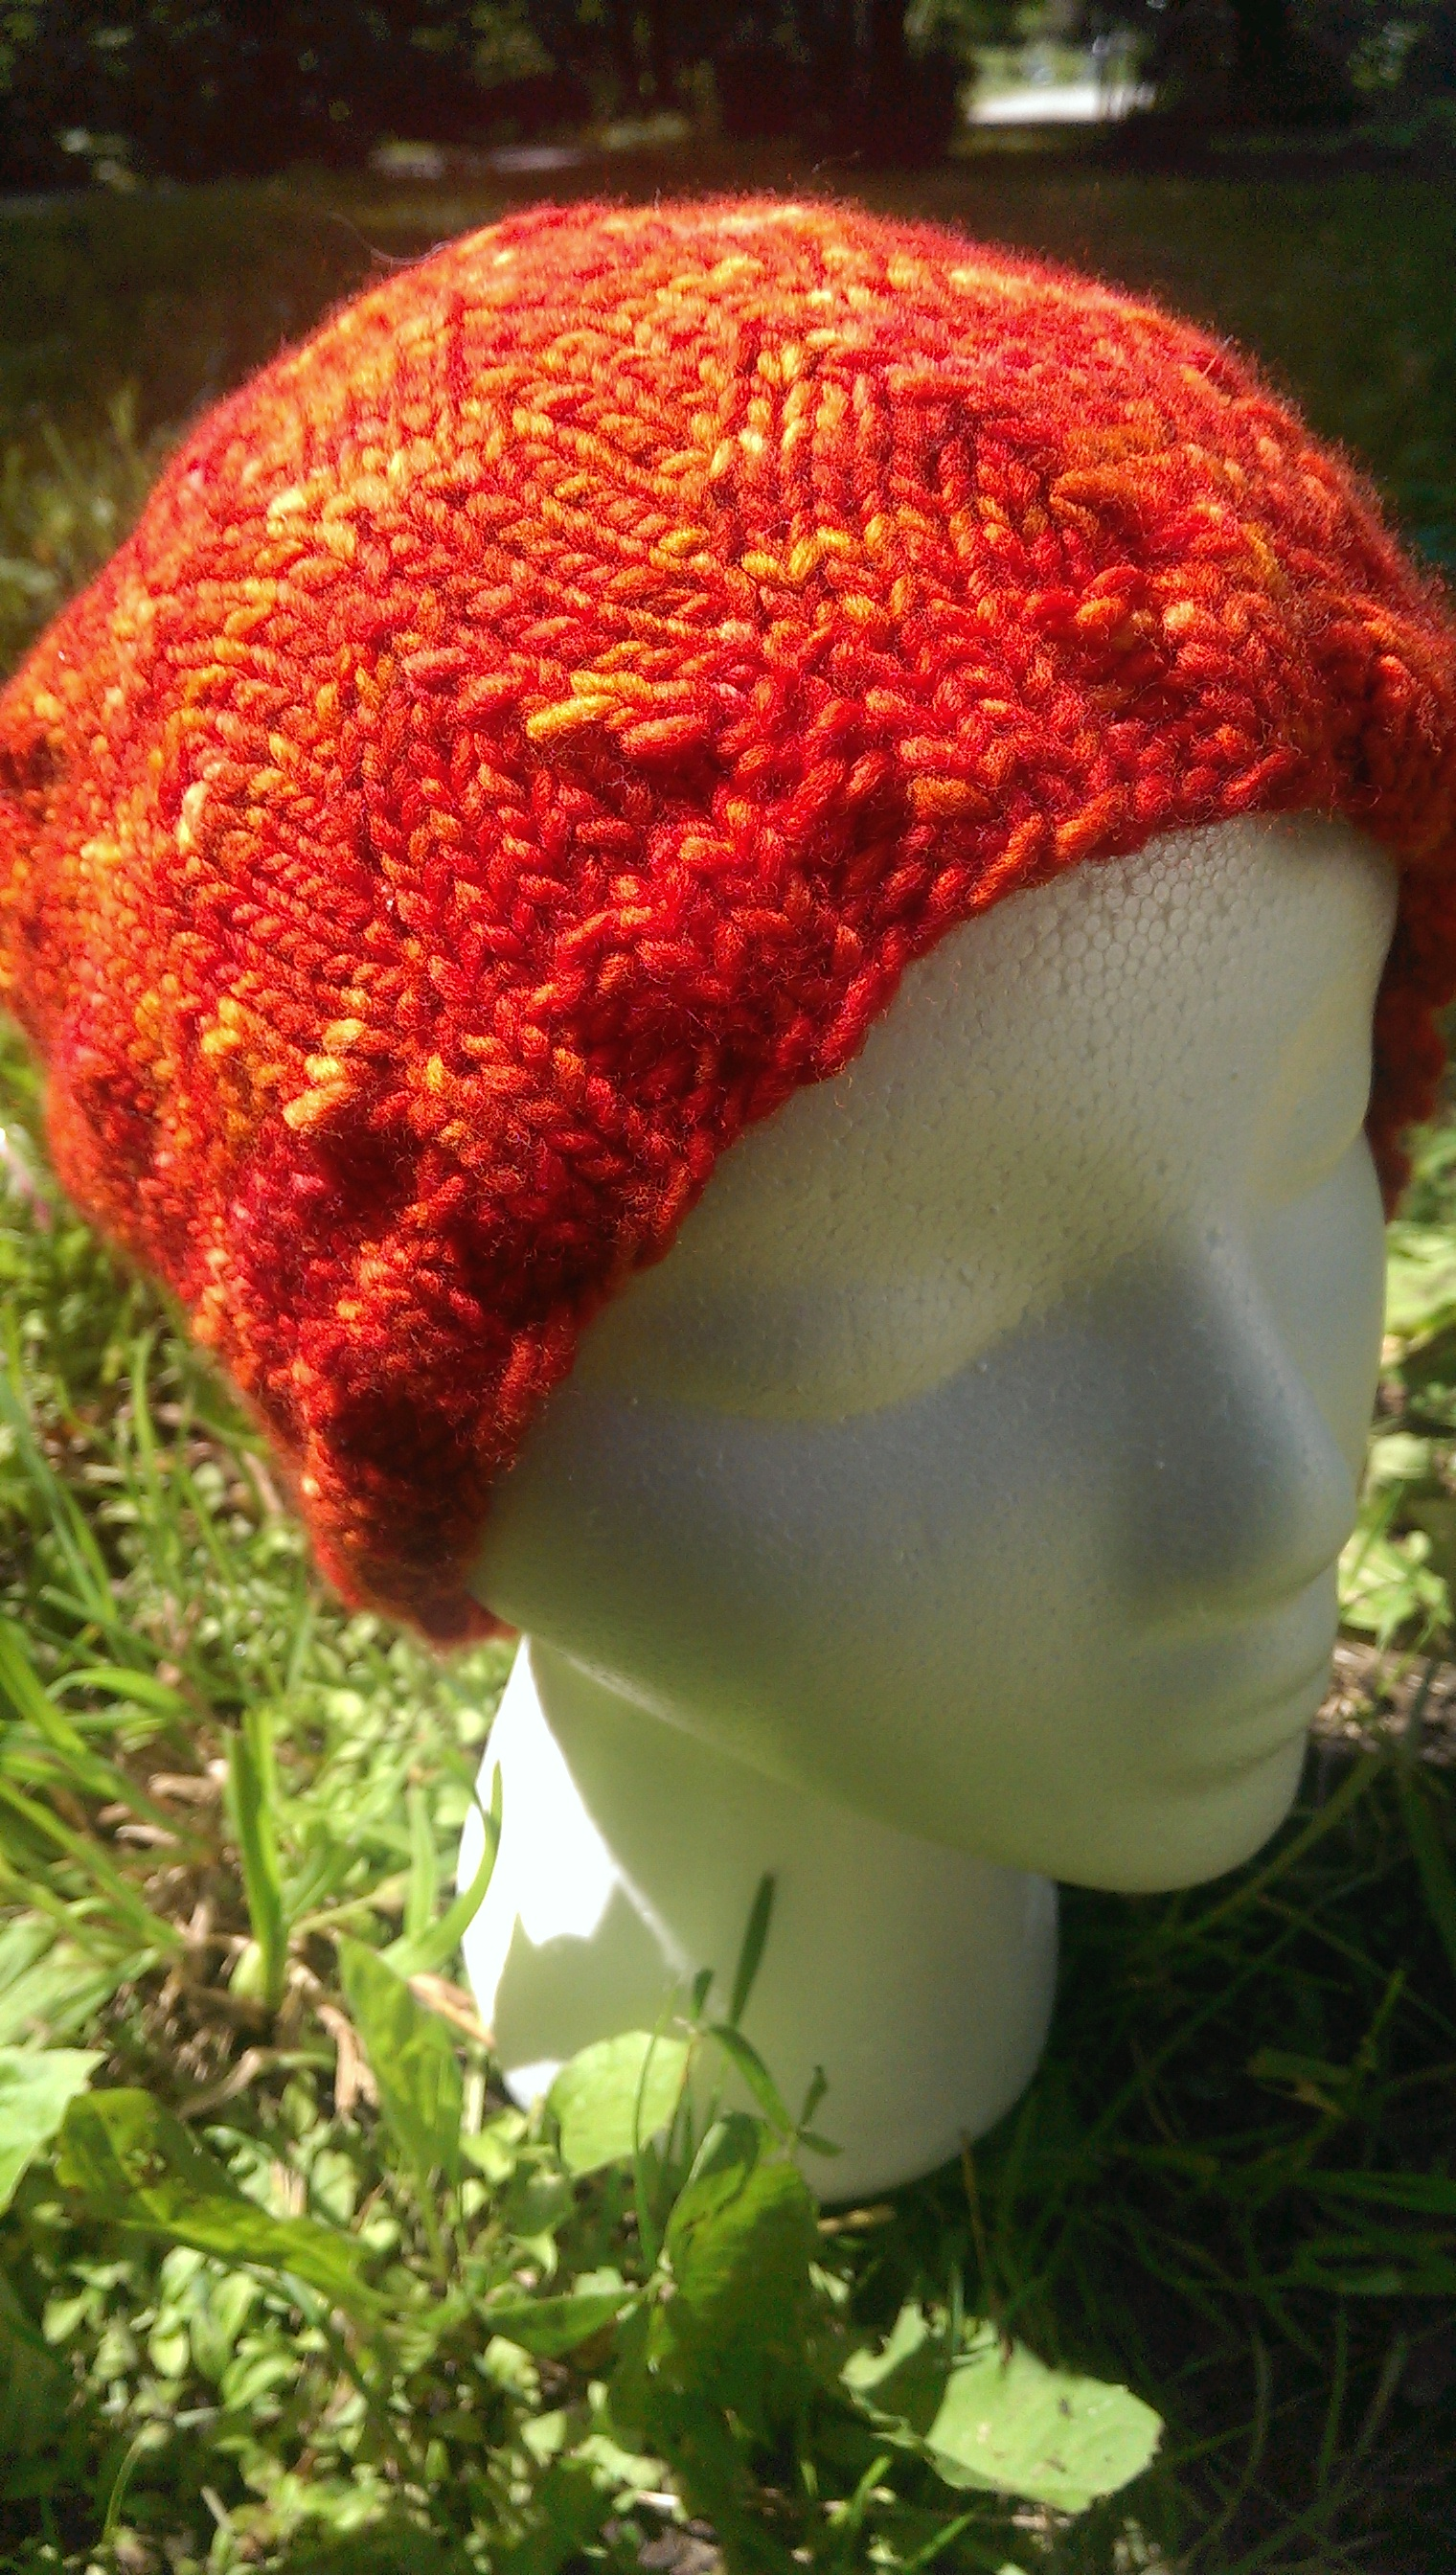 Fire Hat I designed using a stitch pattern from Barbara Walker's Treasury of Knitting Patterns, with Merino hand-dyed from Manos del Uruguay